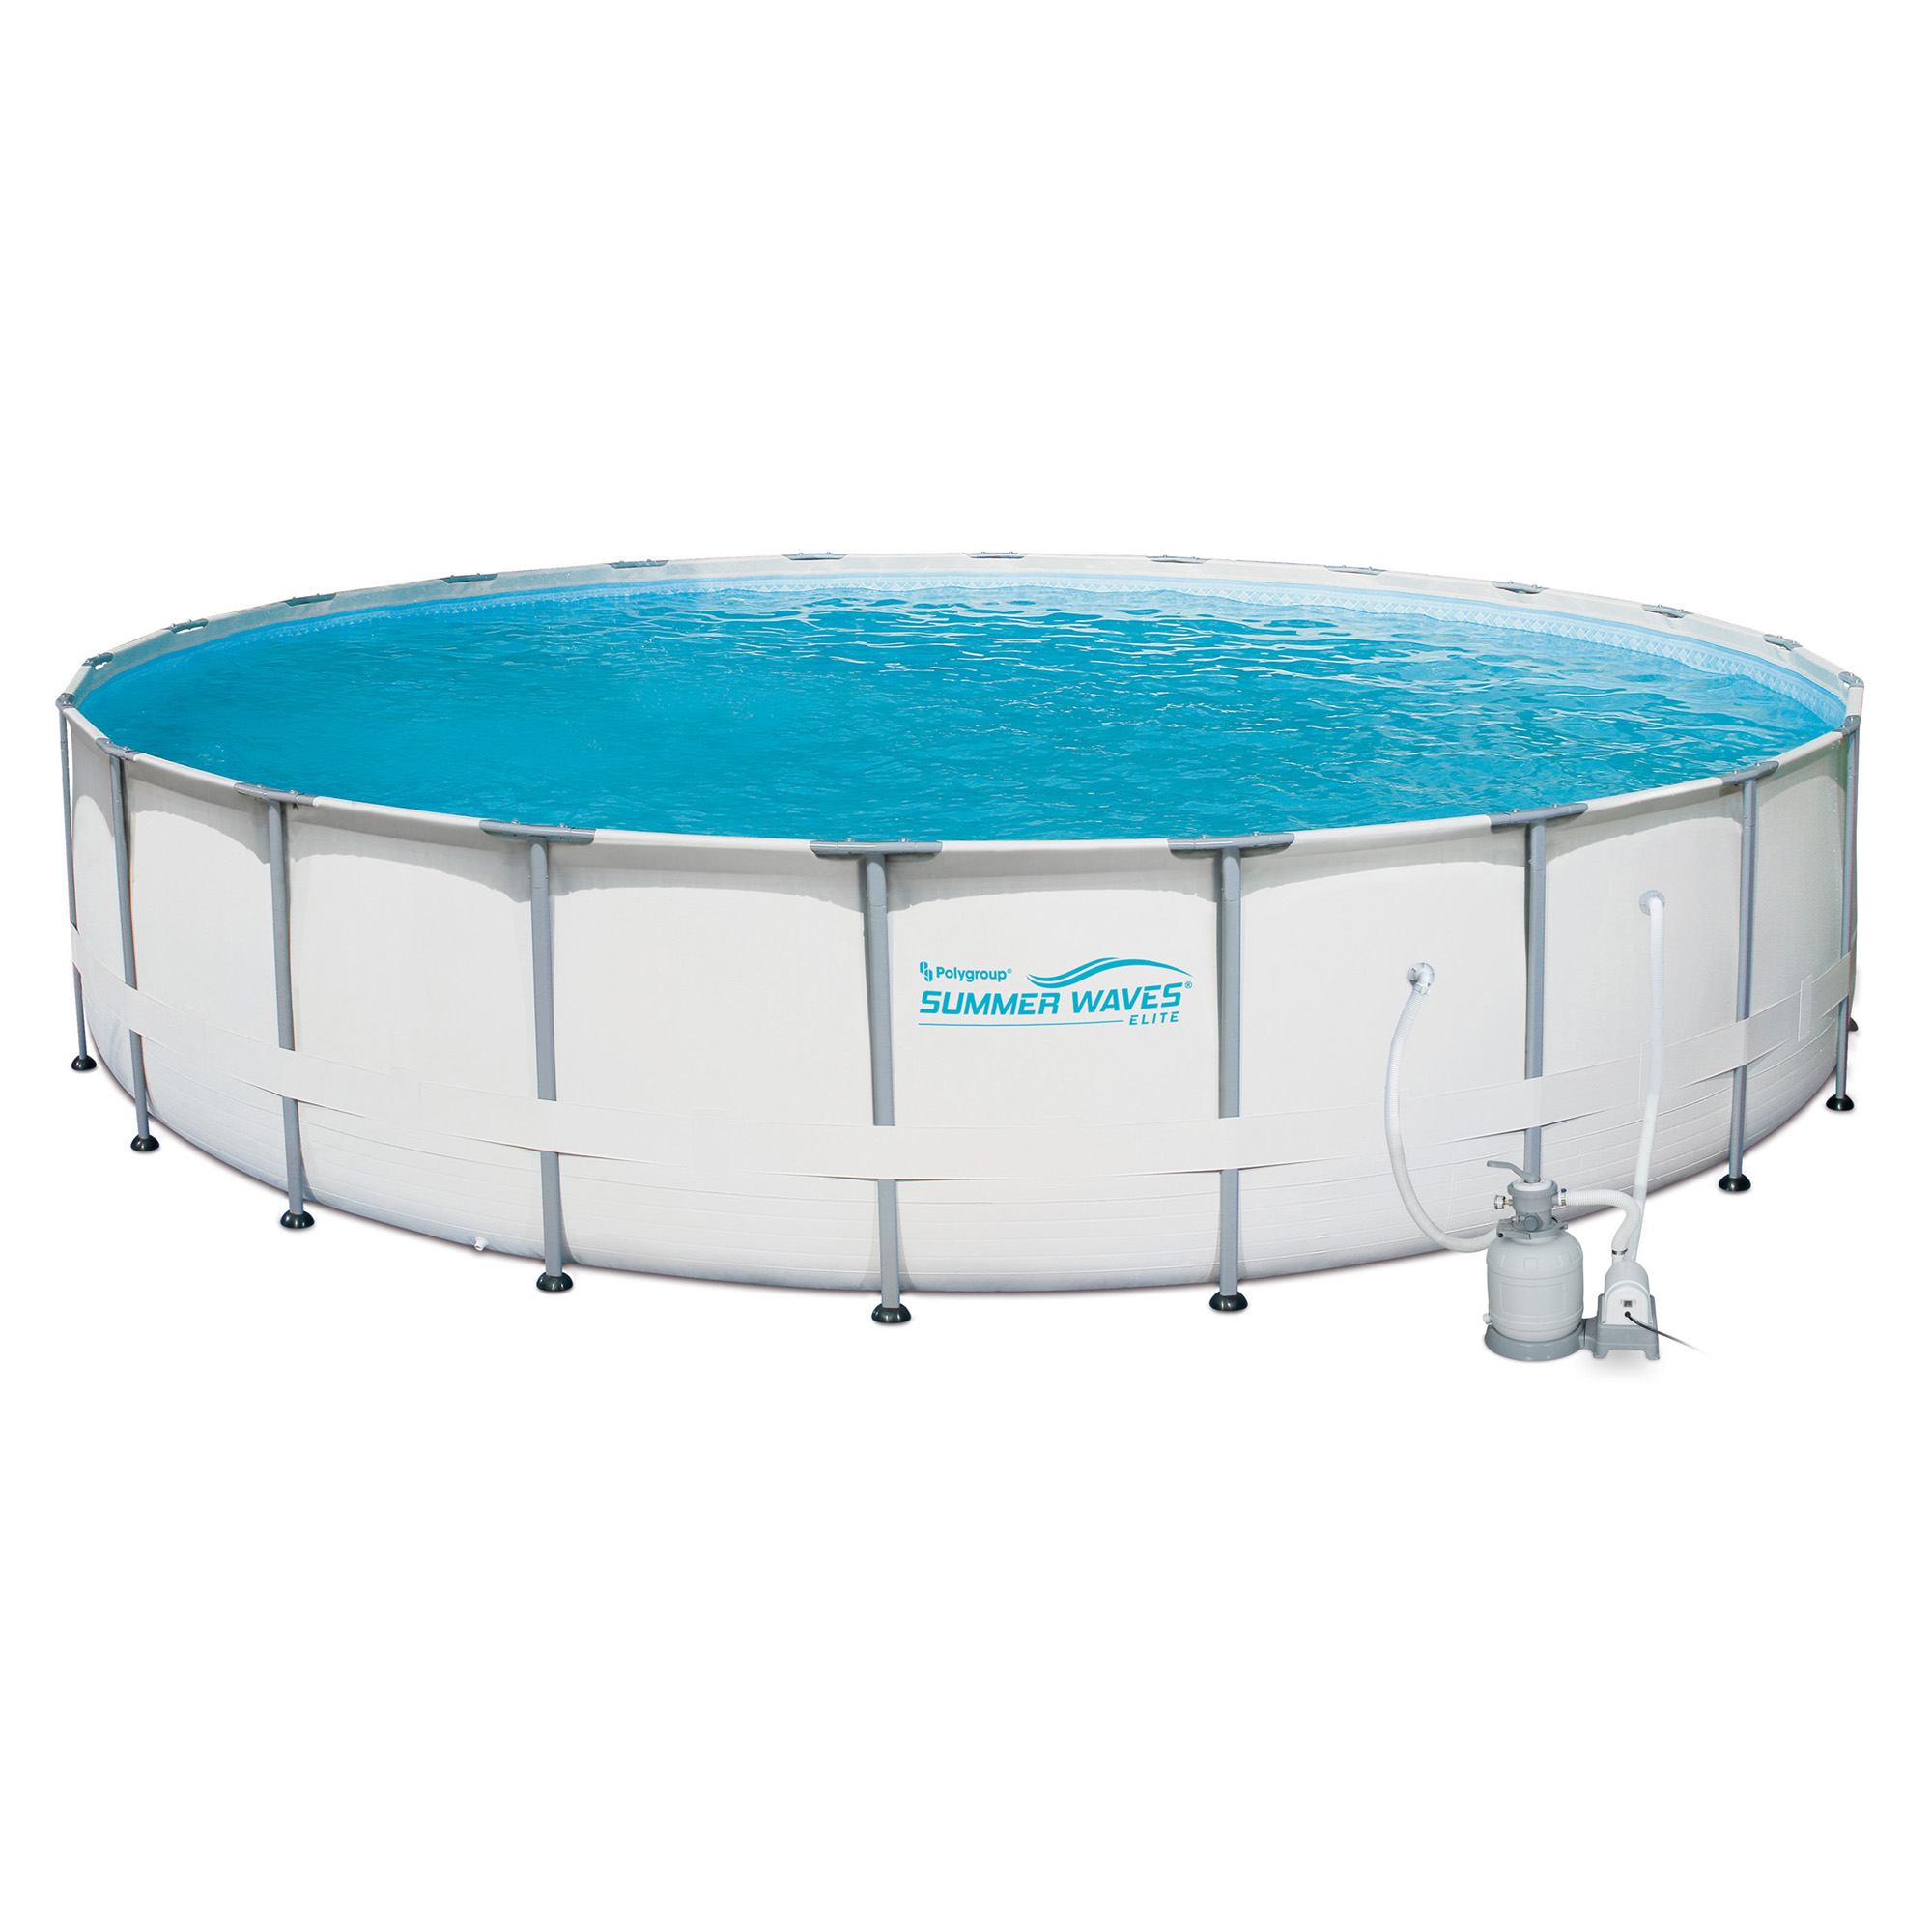 Summer waves elite 24 39 ft metal frame above ground pool for Above ground pool set